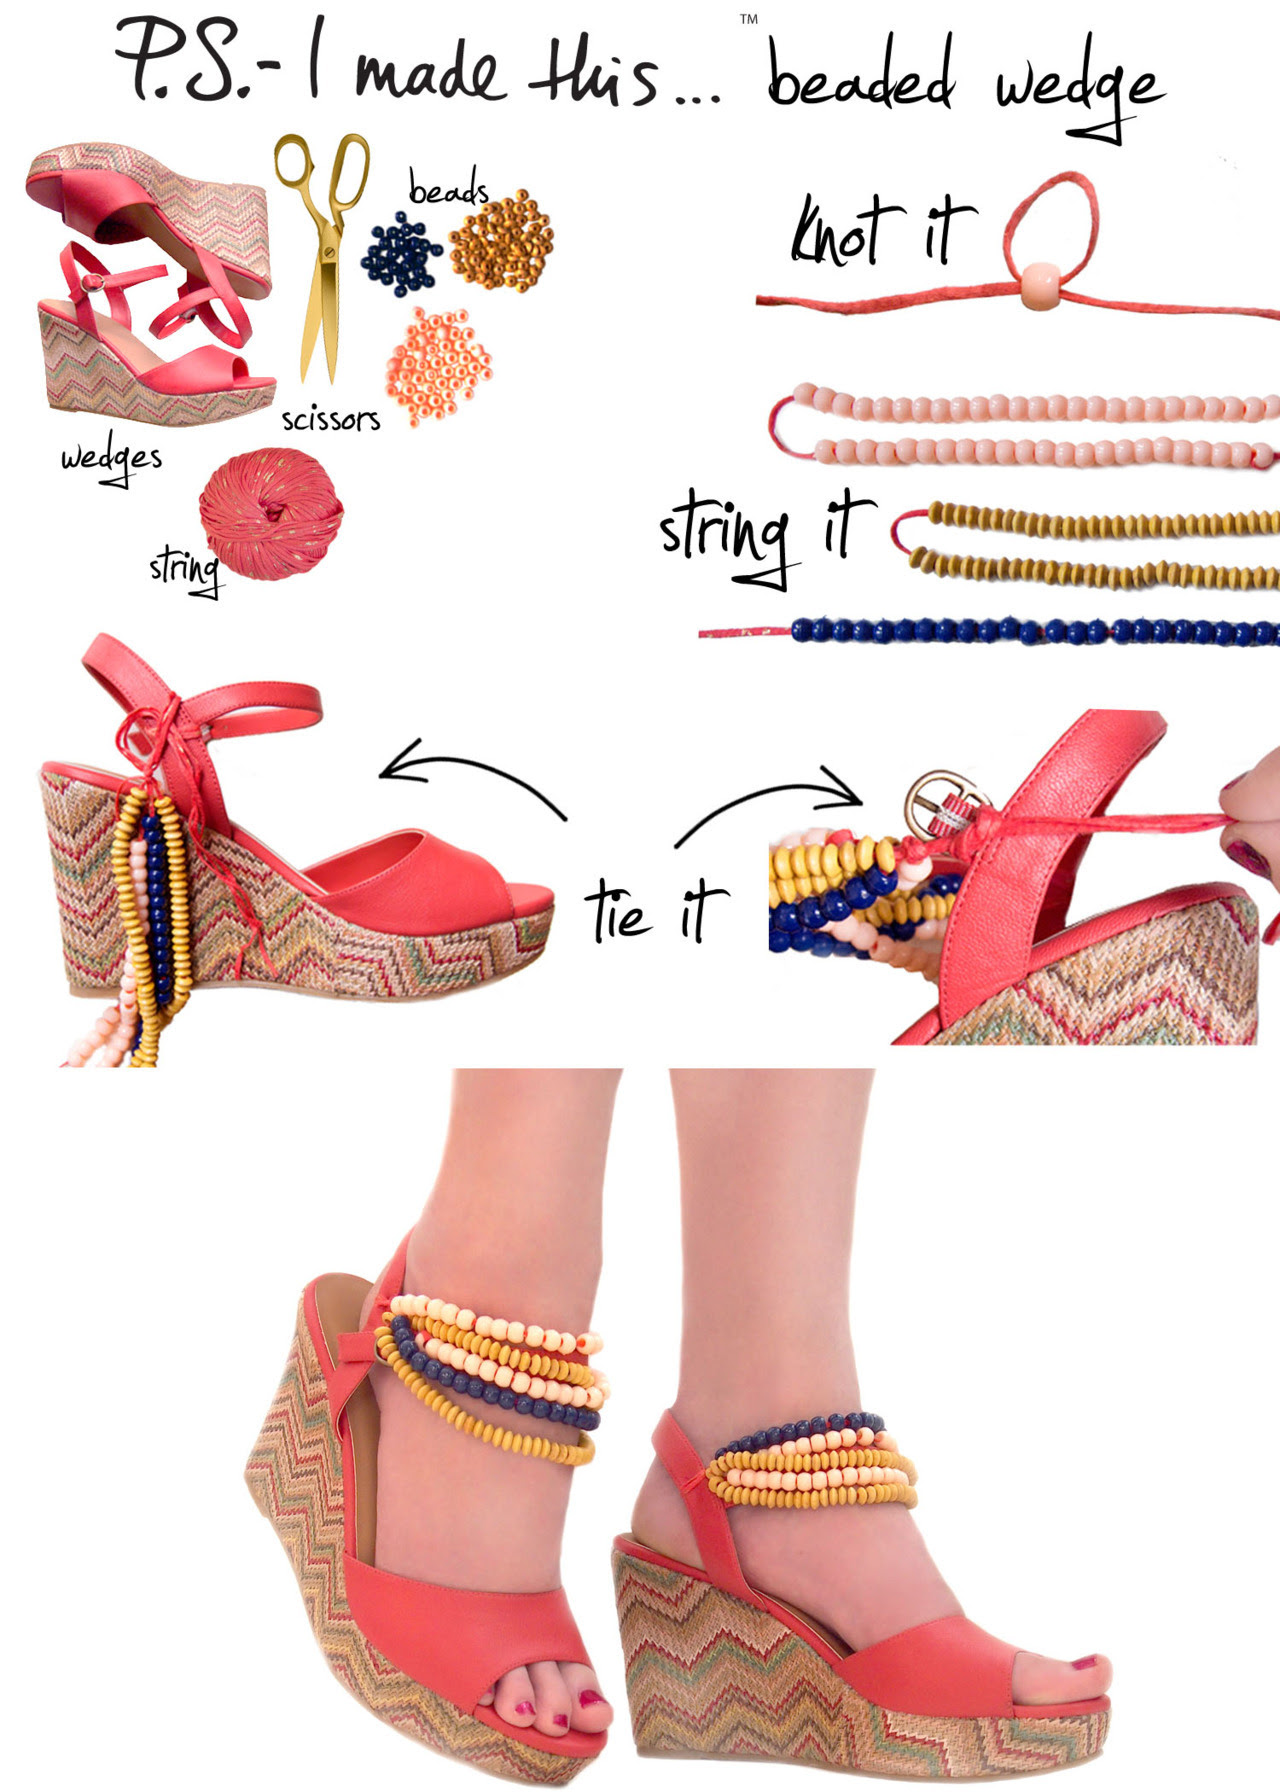 """B"" is for beads and Burberry.  The London-town fashion house blew us away with their bold beaded wedges.  Get inspired, get beading, and step into a sunny season with flirty embellishments on your stems. Adding bright beads to a basic wedge will breathe new life into last seasons shoe for this seasons lust-have item.    To create:  Reach for a wedge.  P.S.- We opted for these fun zig zag wedges.  Collect an assortment of wooden and/or plastic beads in colors and tones that compliment your shoe and personal style.  String beads onto a thin cord, string or ribbon.  Group together strands and double knot to your ankle strap and secure on both sides.  Vary the length slightly, so the beads have a cascading cluster effect!"